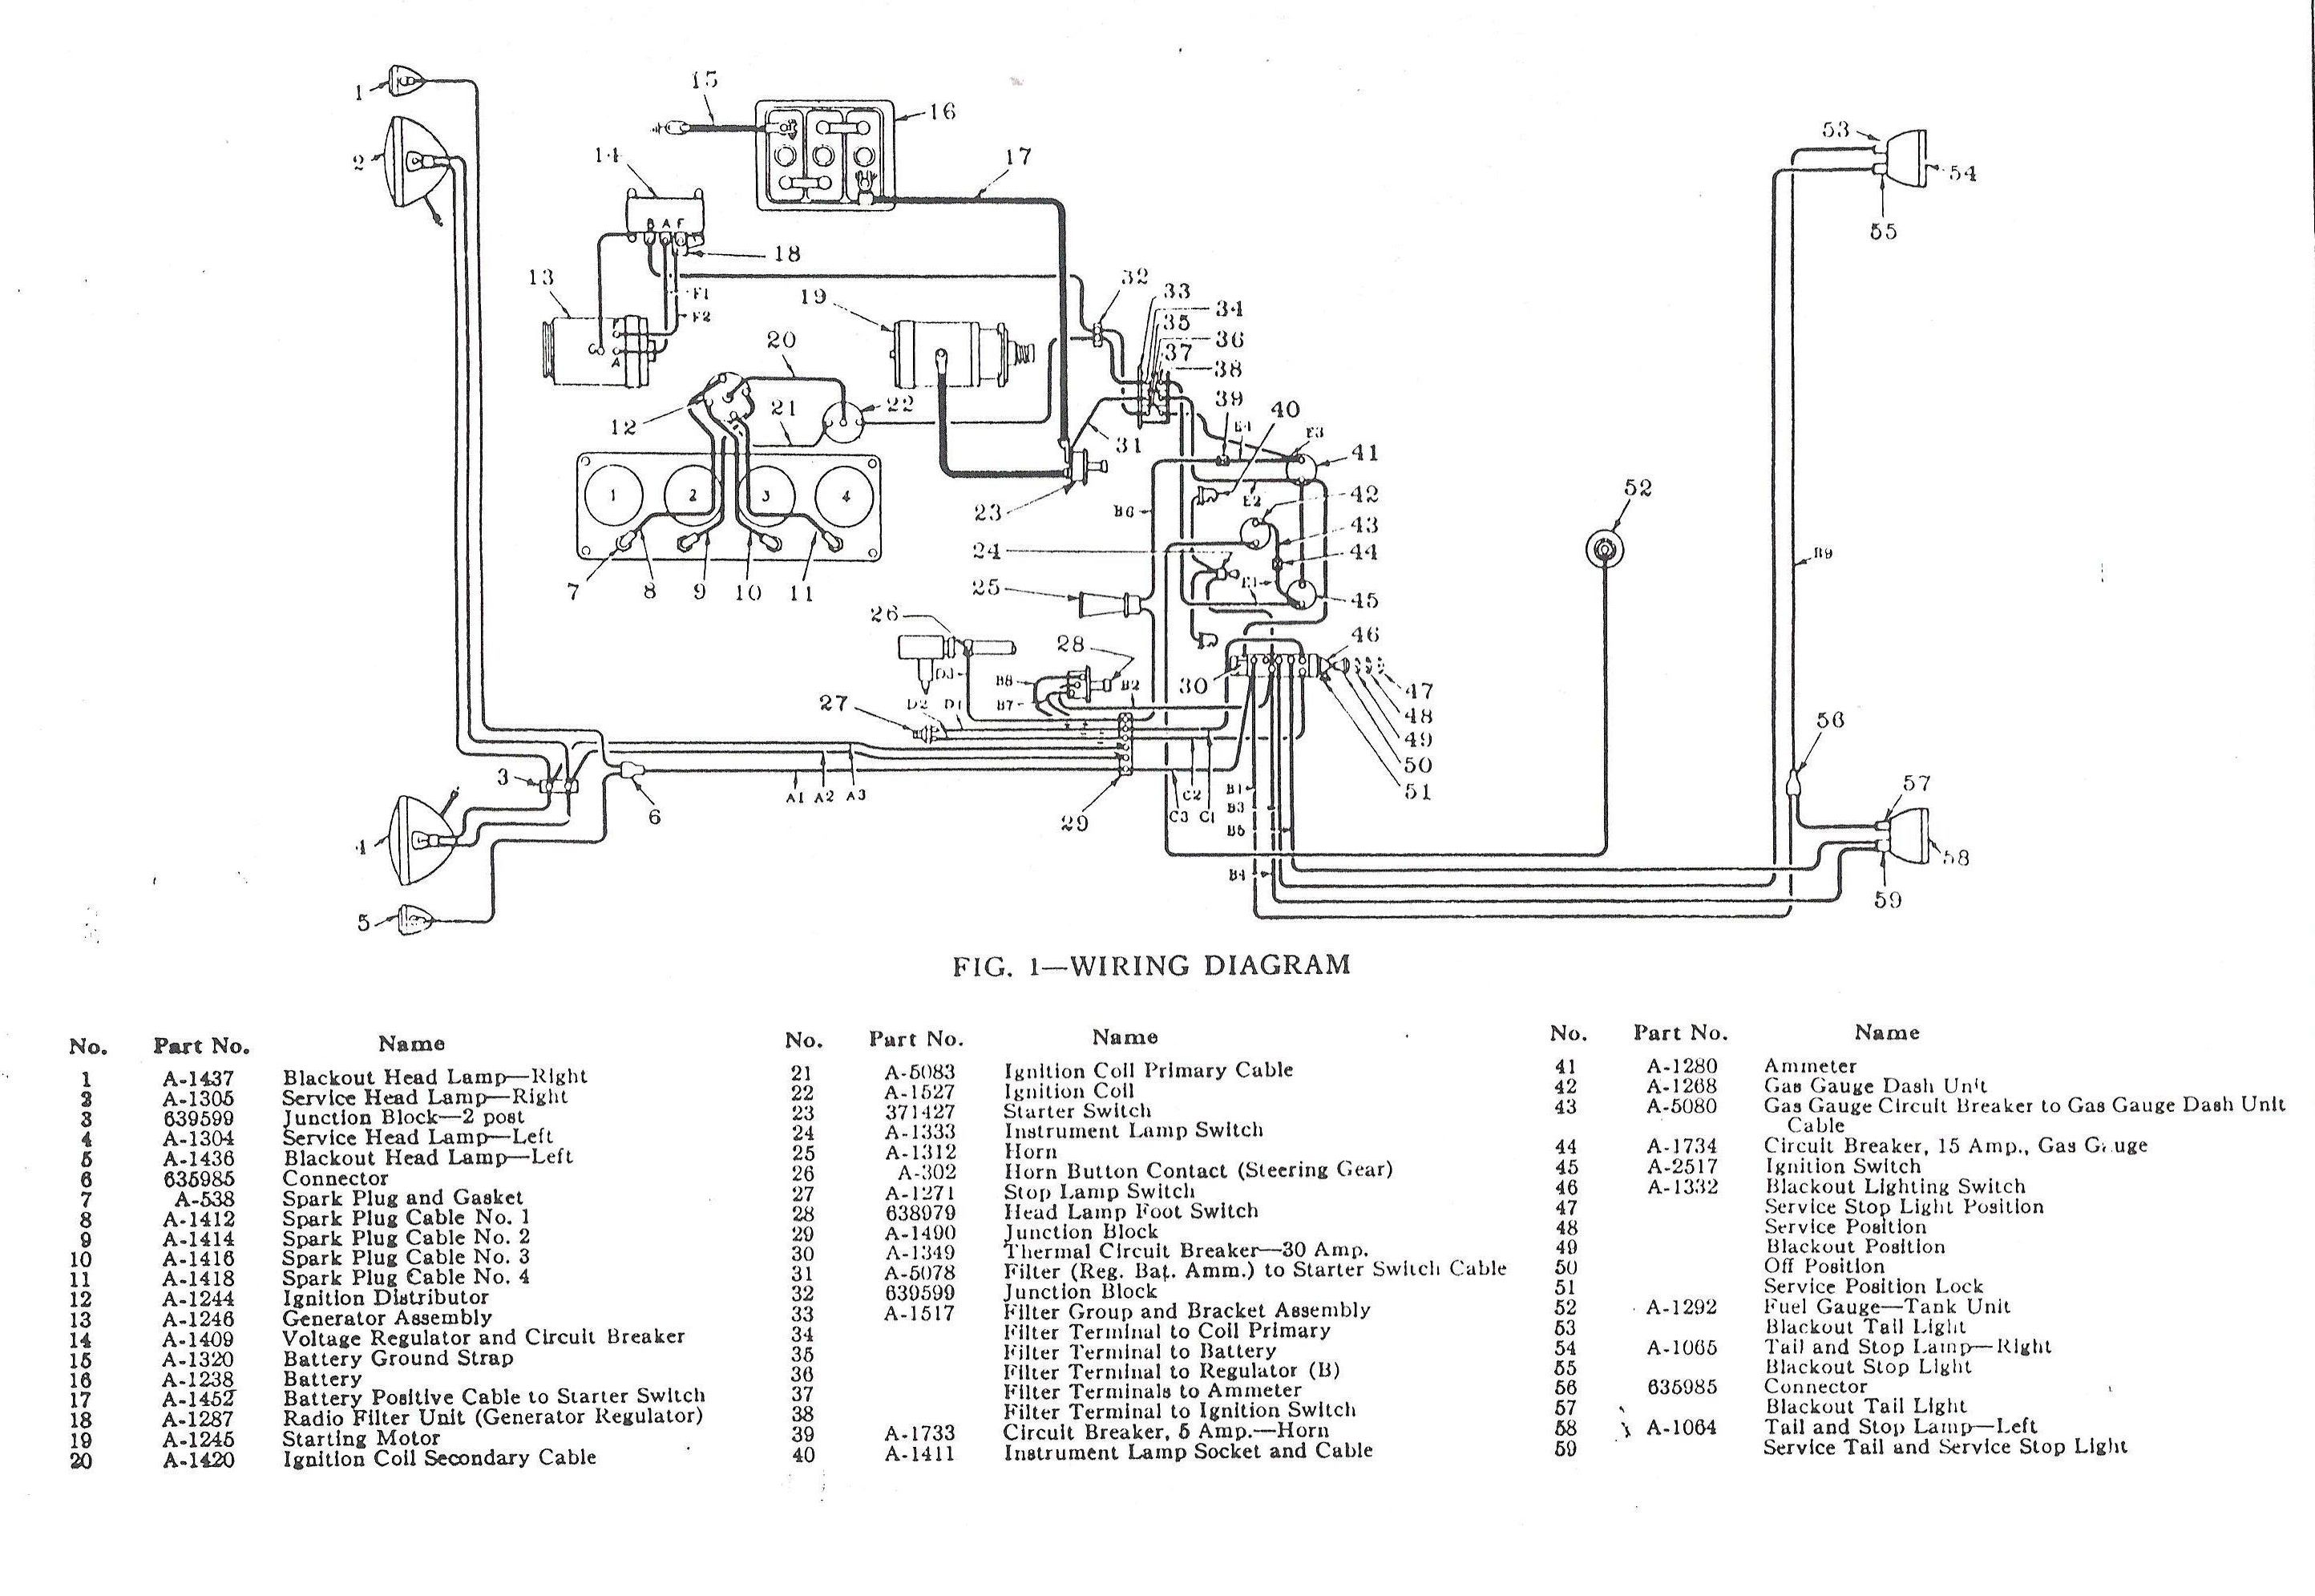 Mb Wiring On Willys Jeep Diagram Jipler Pinterest Diagram And Wiring  Diagram Of Bow To Solve A Problem Wiring For Jeep Mb